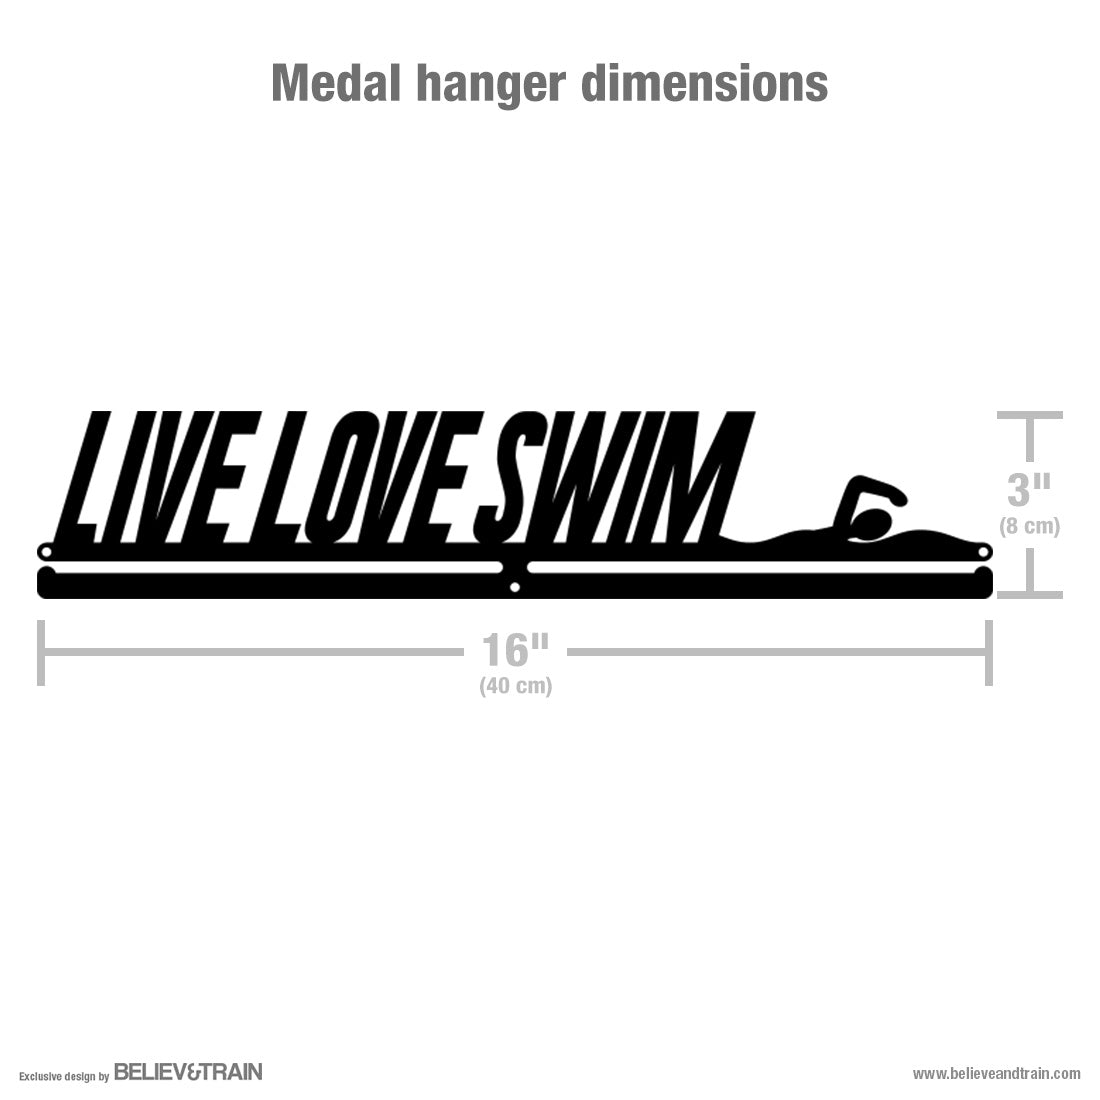 Live Love Swim - Swimming Medal Hanger